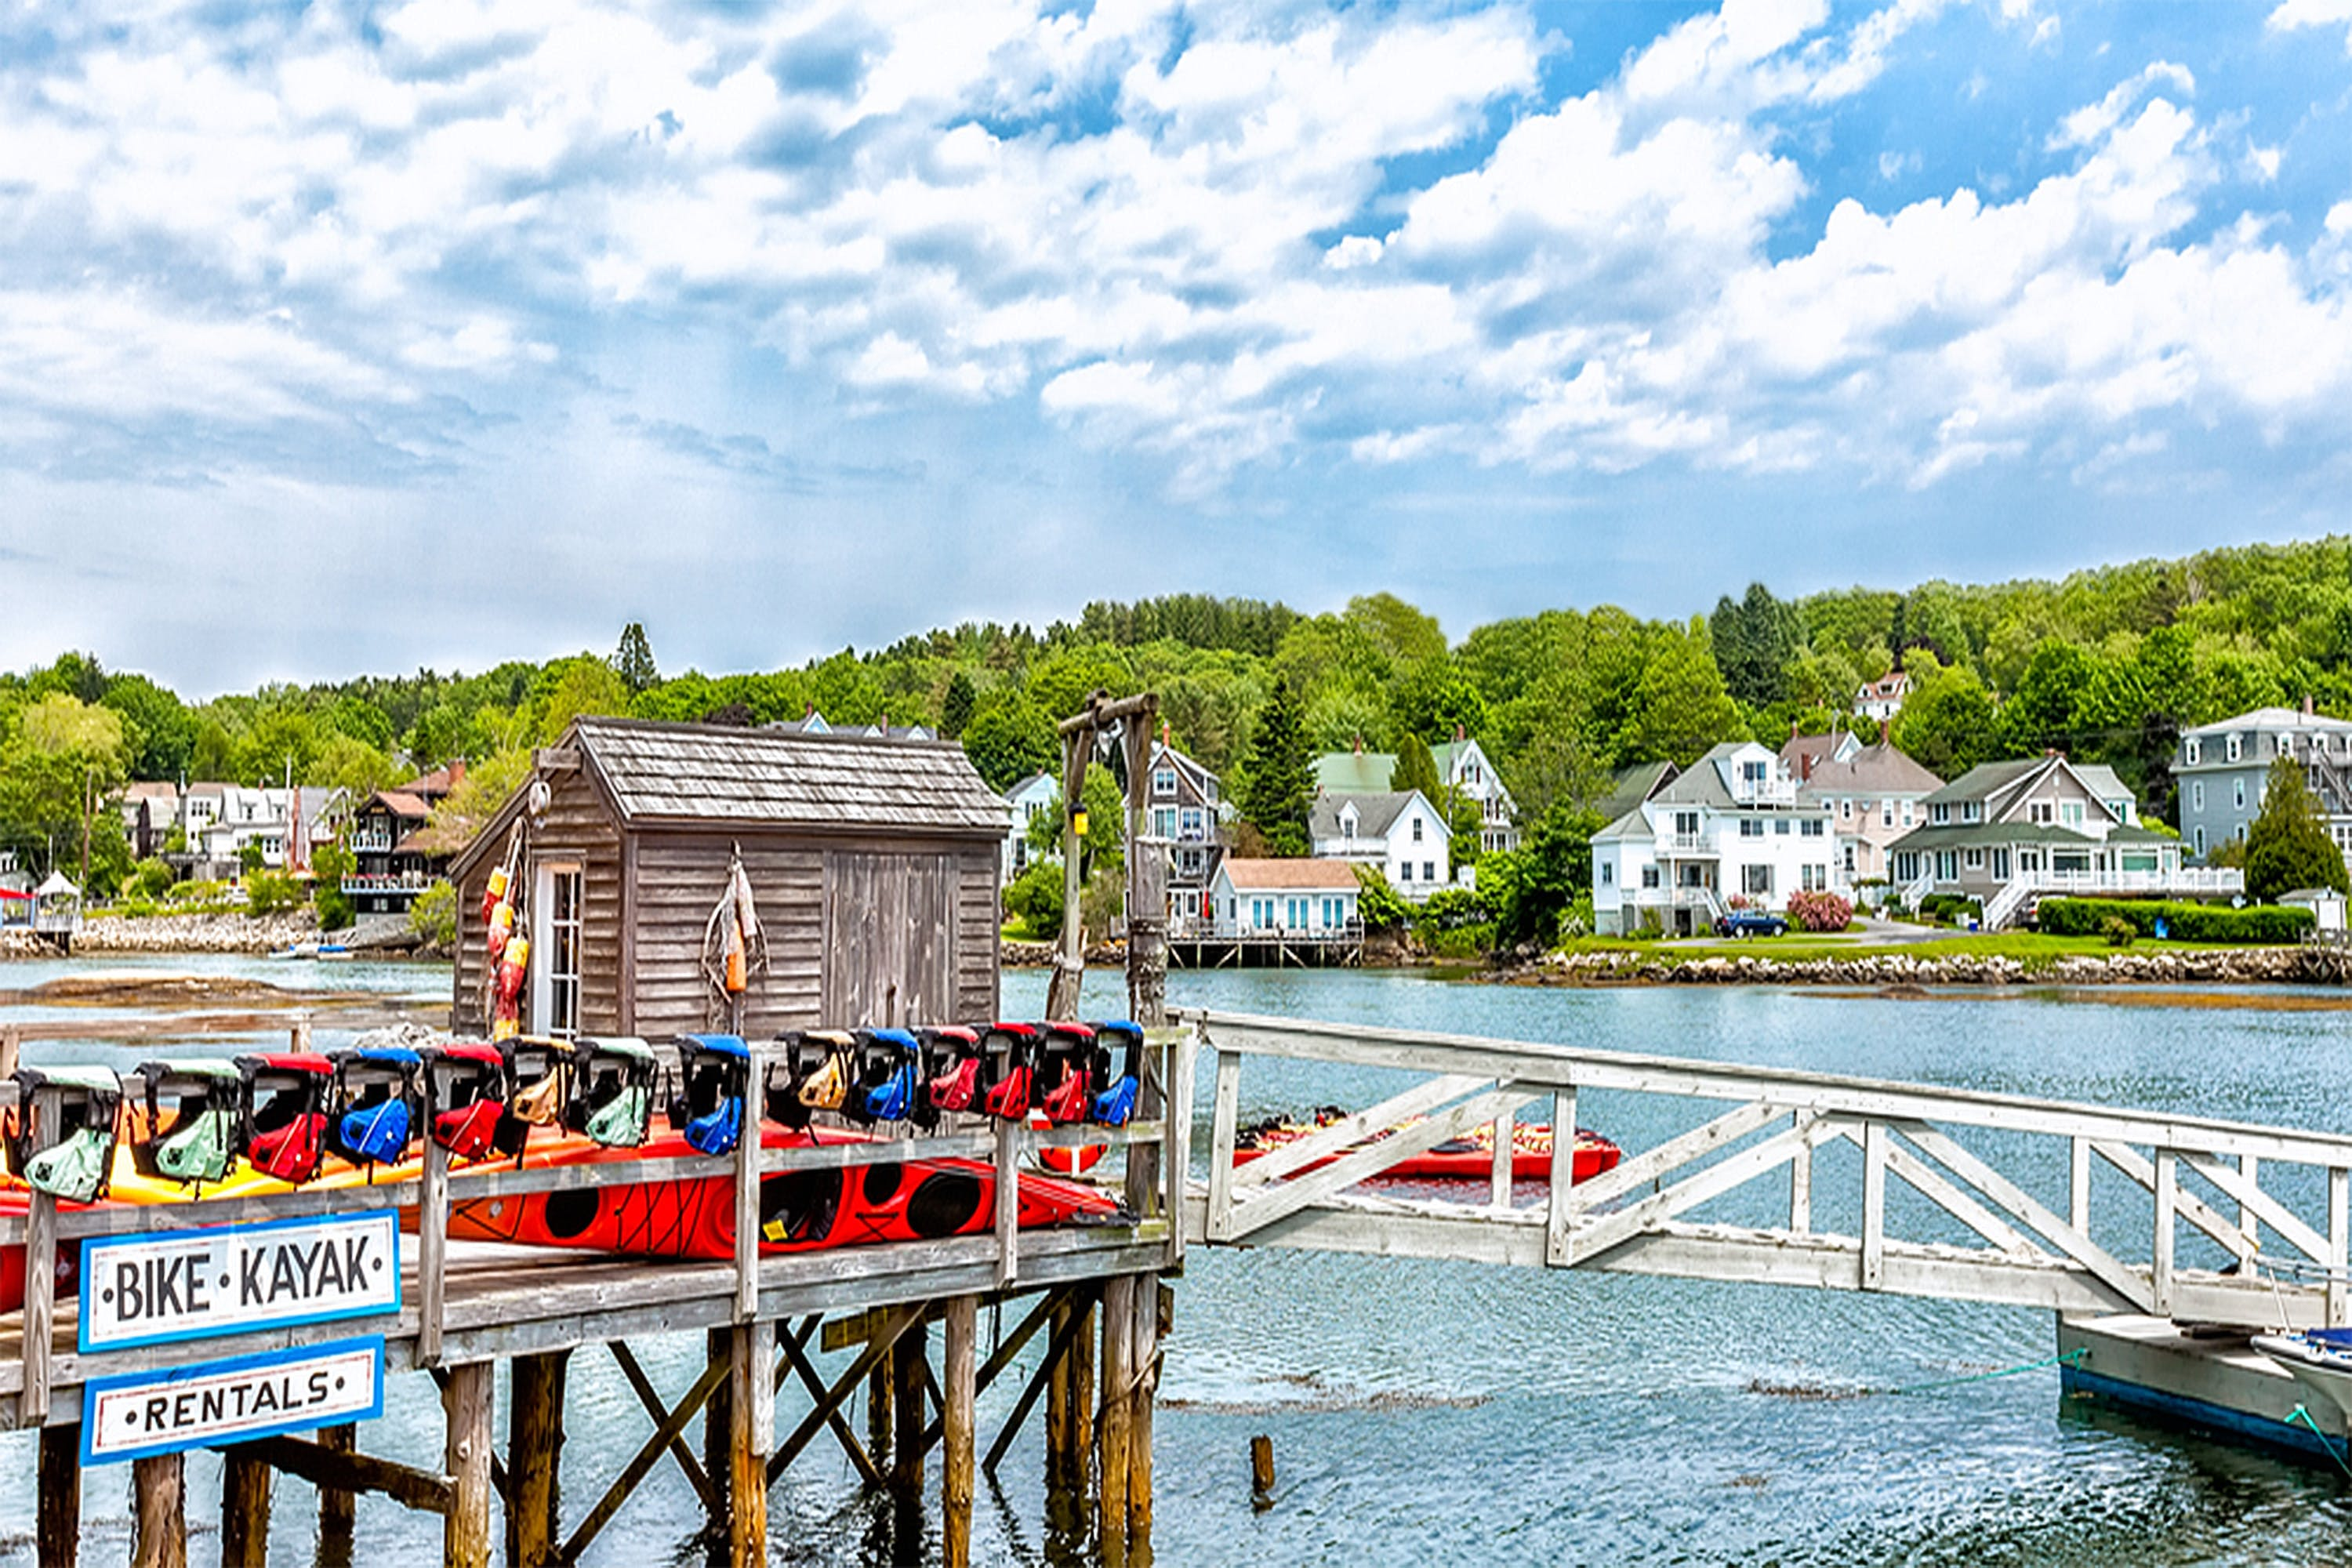 Kayak and bike rentals in Boothbay Harbor, Maine